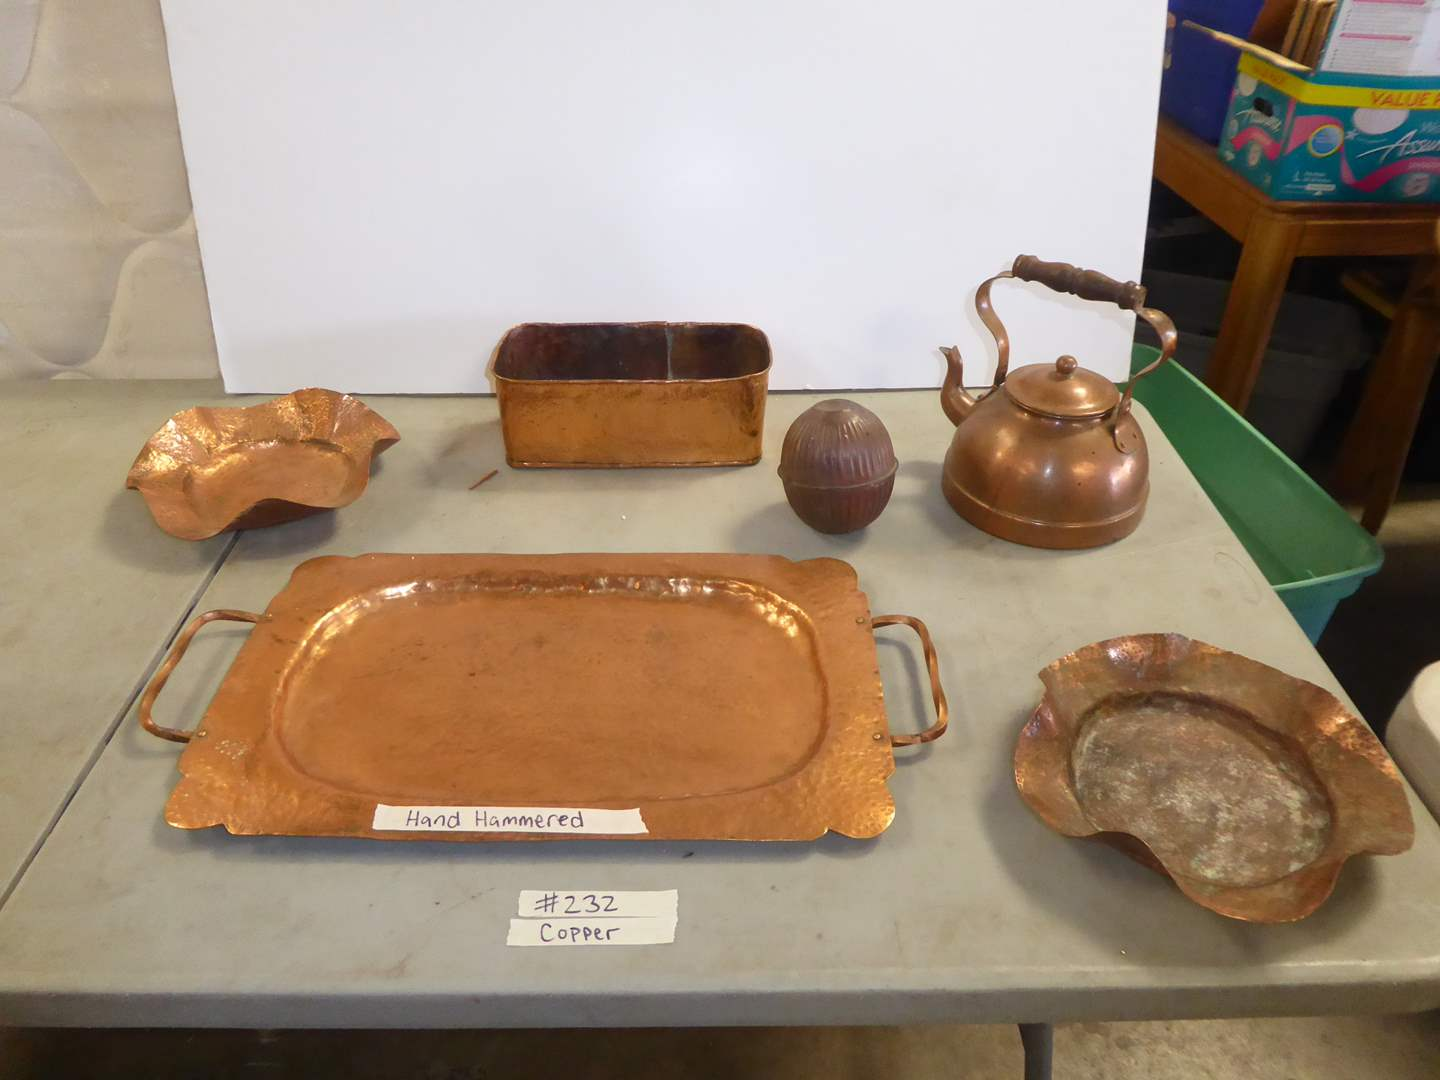 Lot # 232 - Hand Hammered Copper & Other Copper Items  (main image)